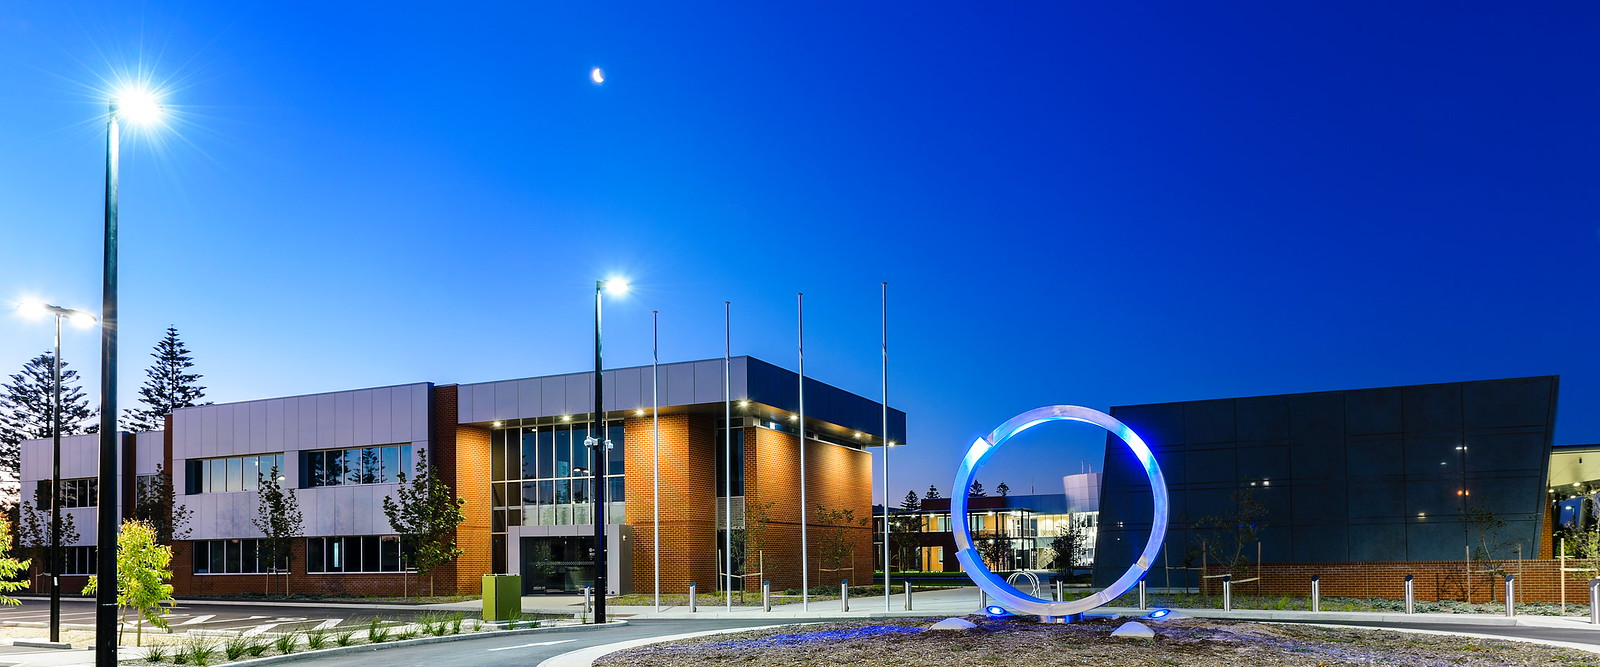 South Australia Police Academy Redevelopment